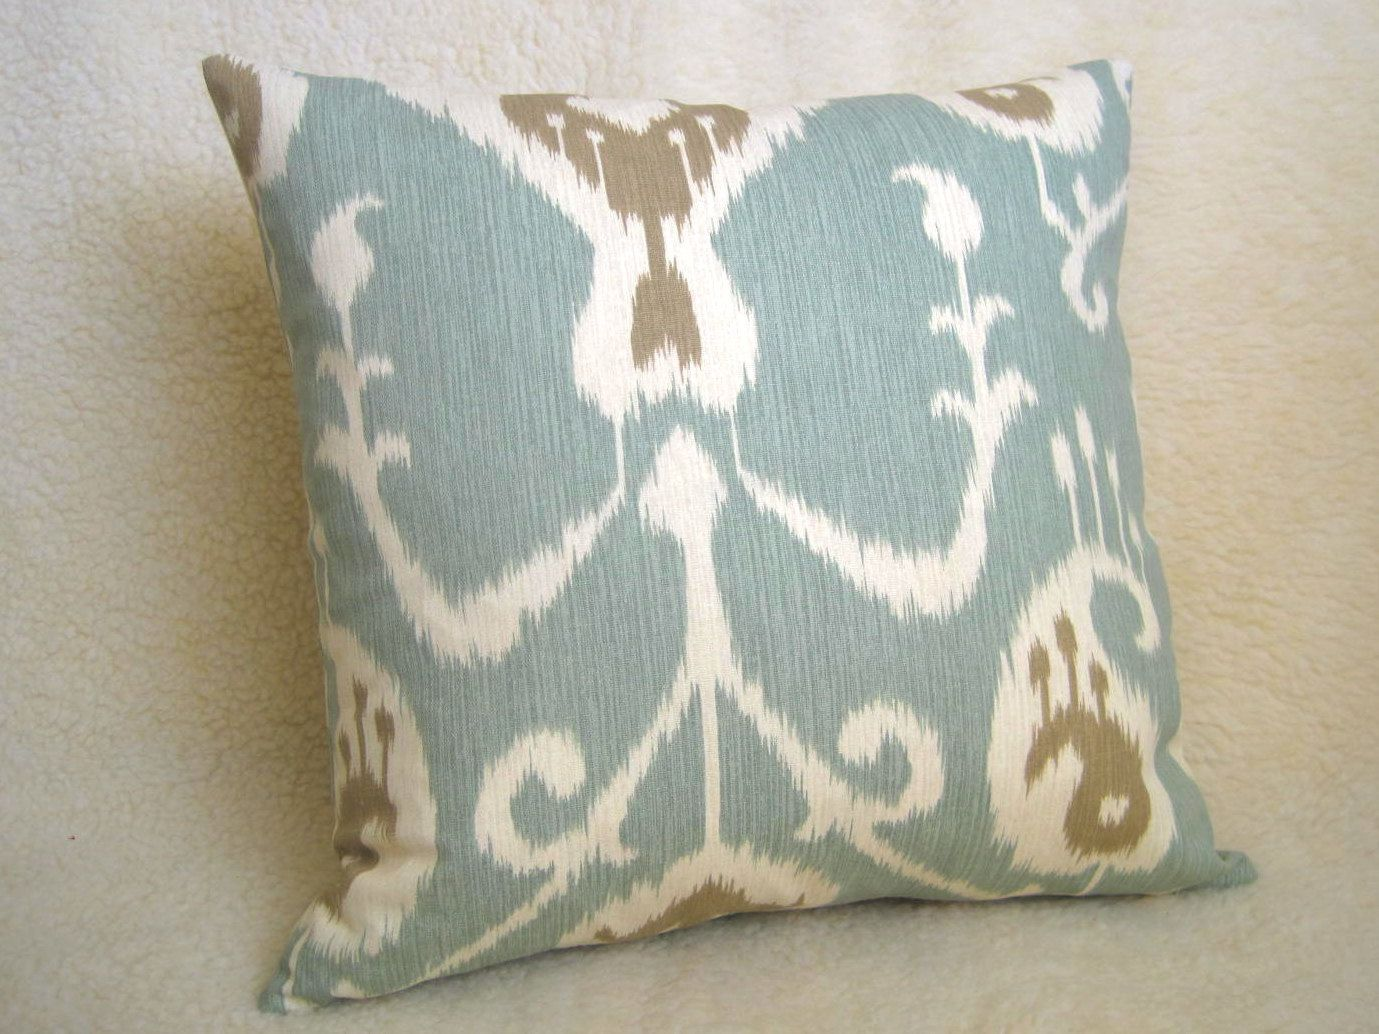 ikat decorative pillow light blue tan cream 16 inch both ikat decorative pillow light blue tan cream 16 inch both sides designer pillows ikat pillow light blue pillow